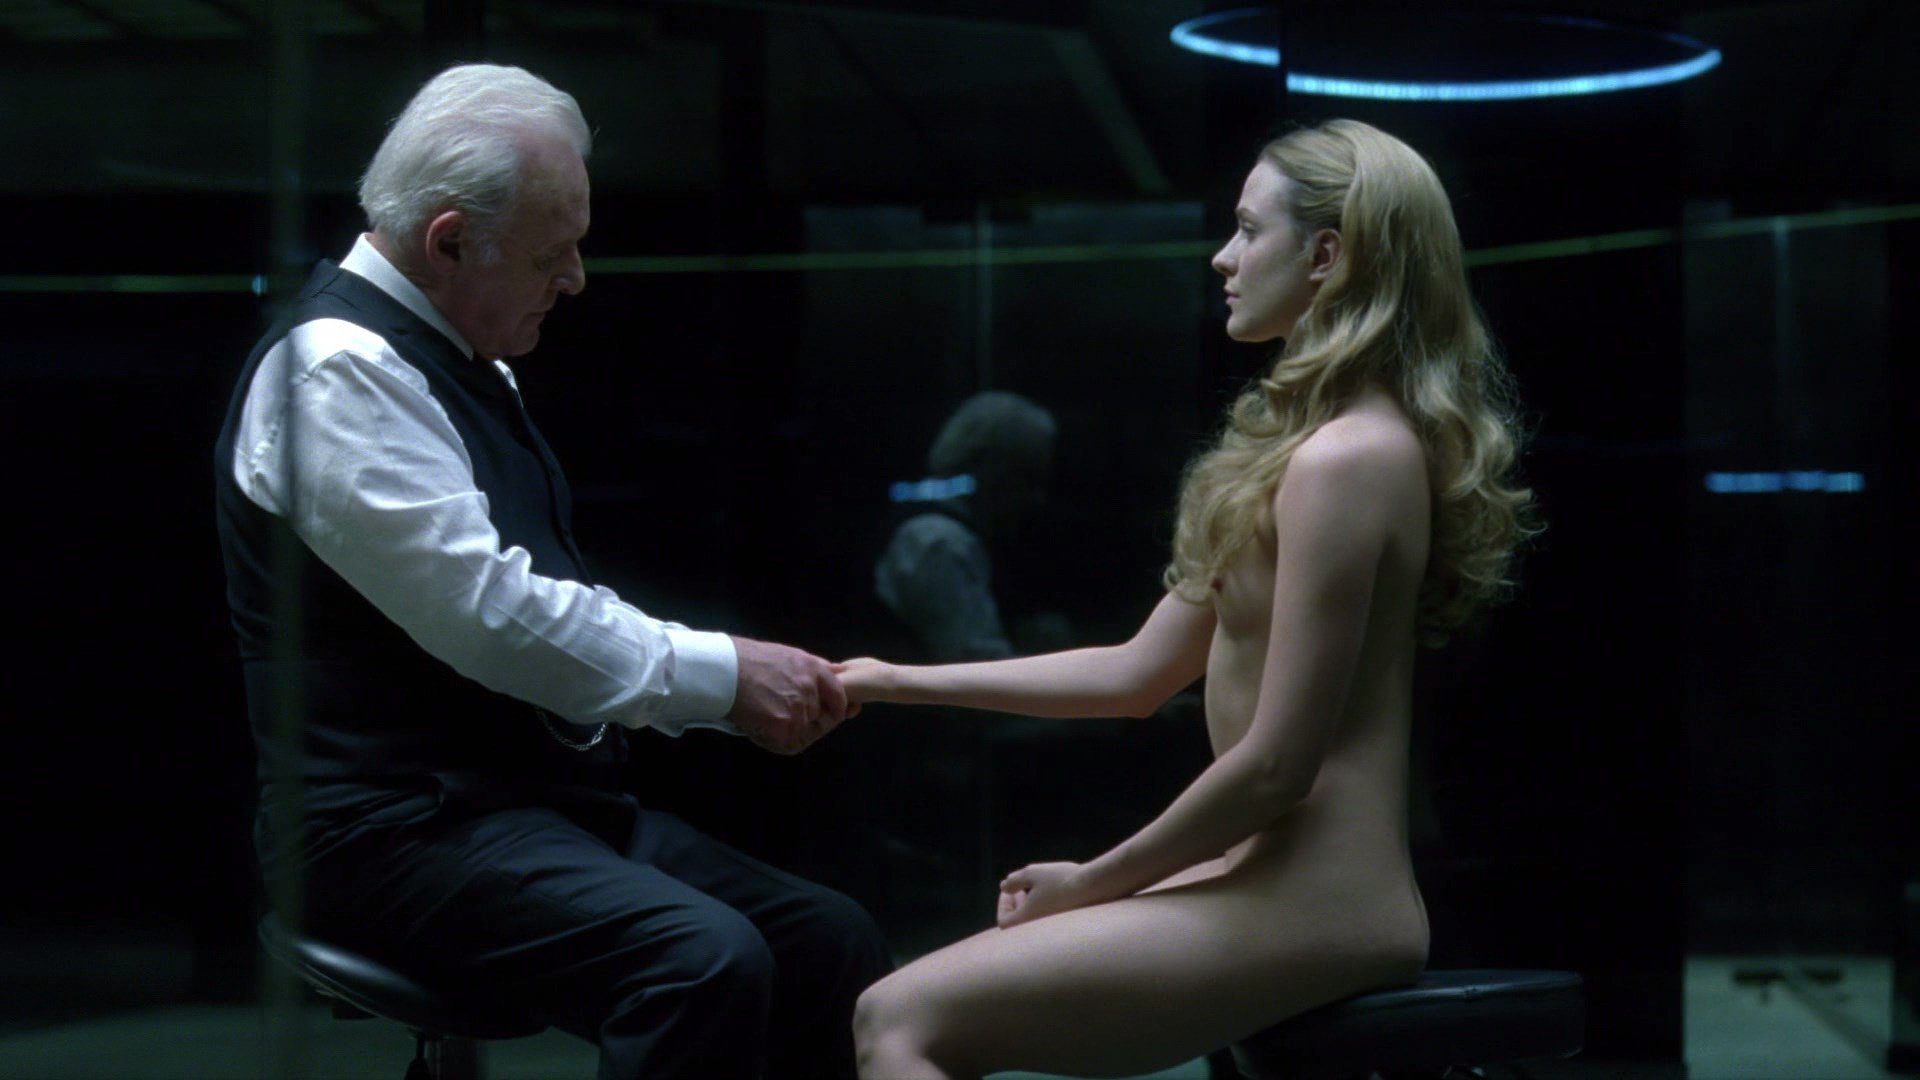 Evan Rachel Wood Nude - Naked Pics and Sex Scenes